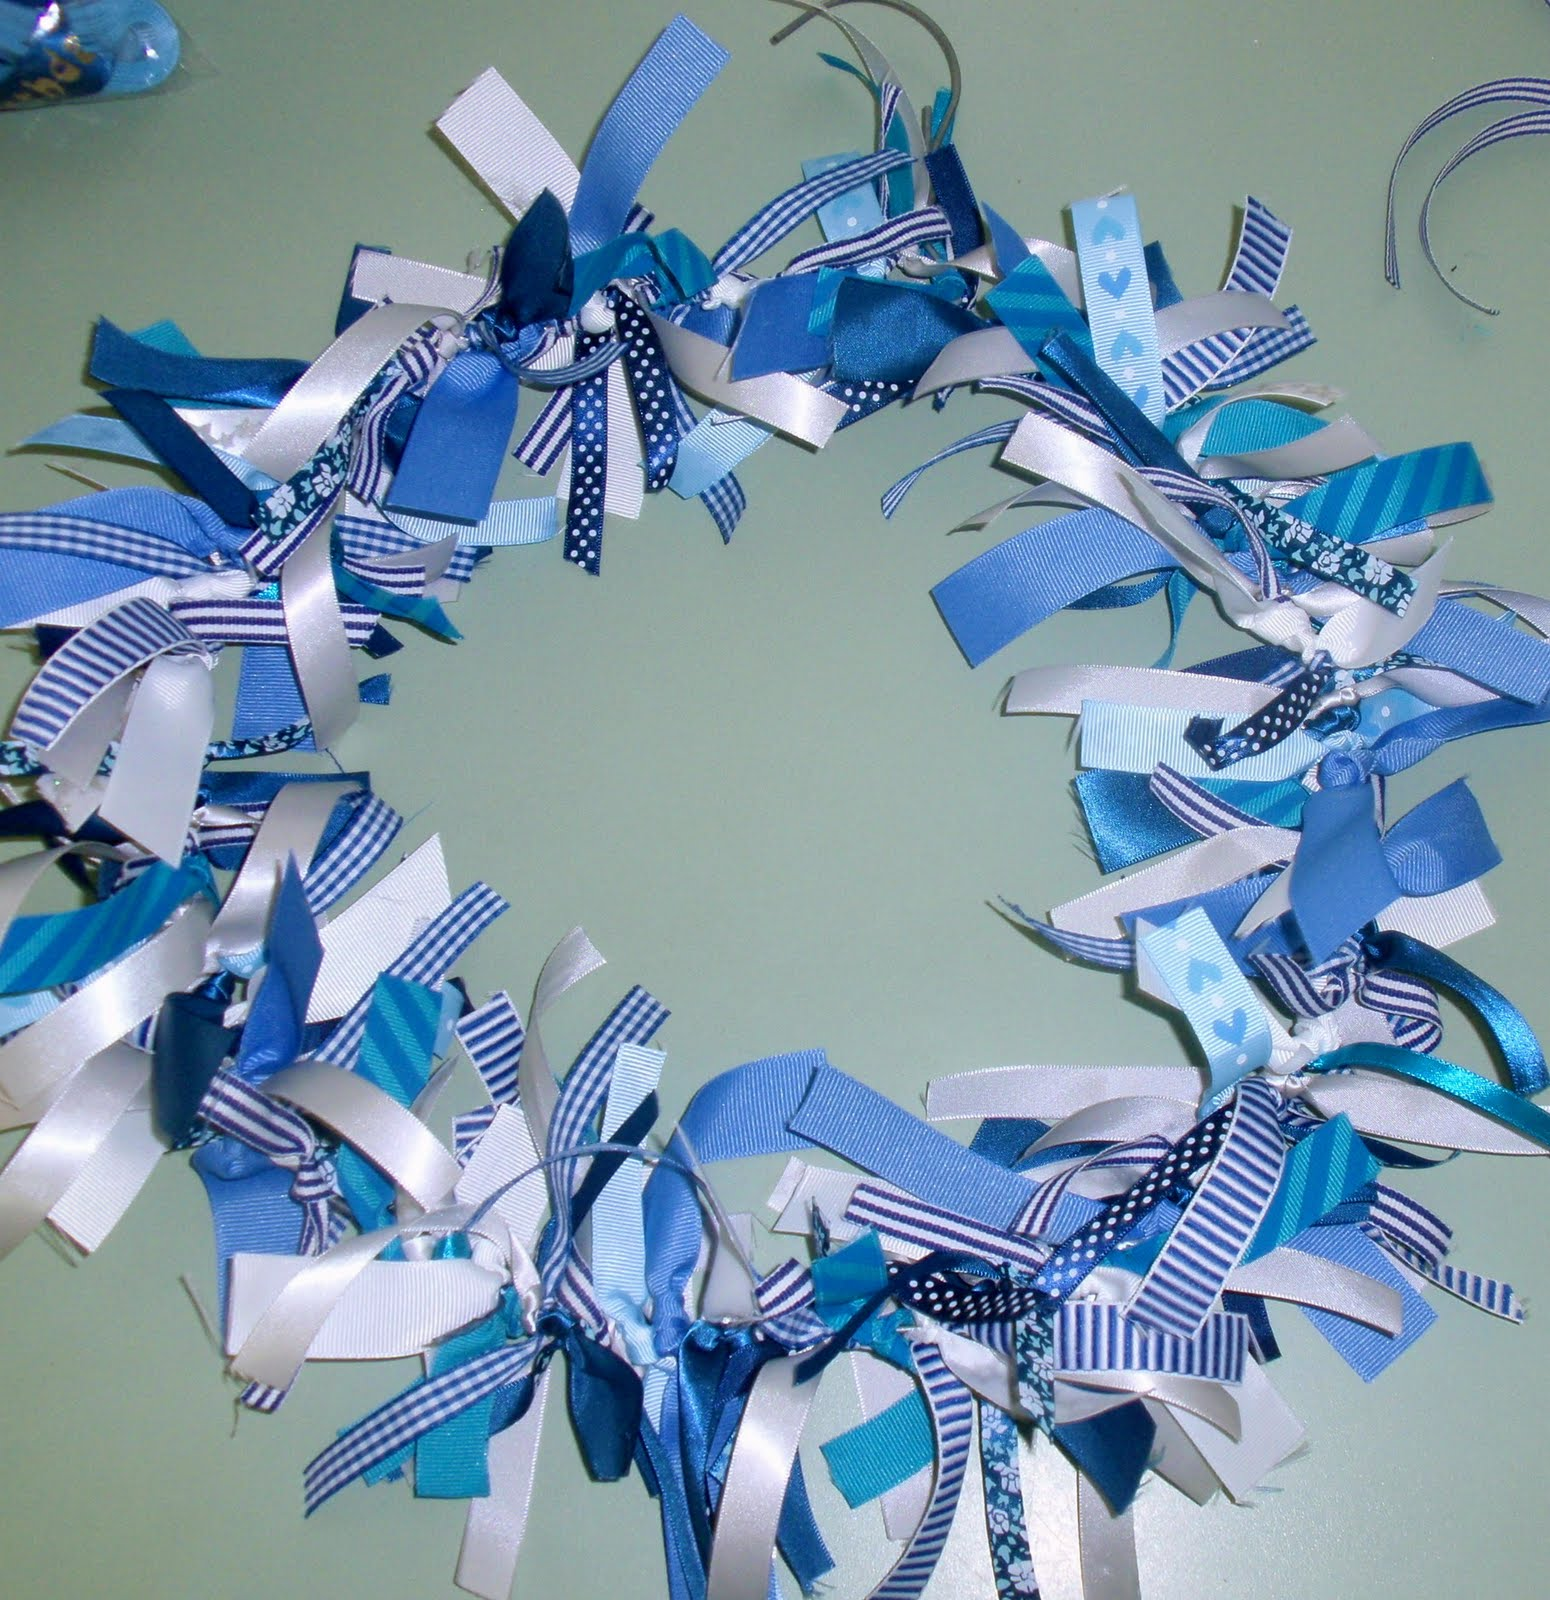 DIY Tutorial From A Catch My Party Member - How to Make a Ribbon ...